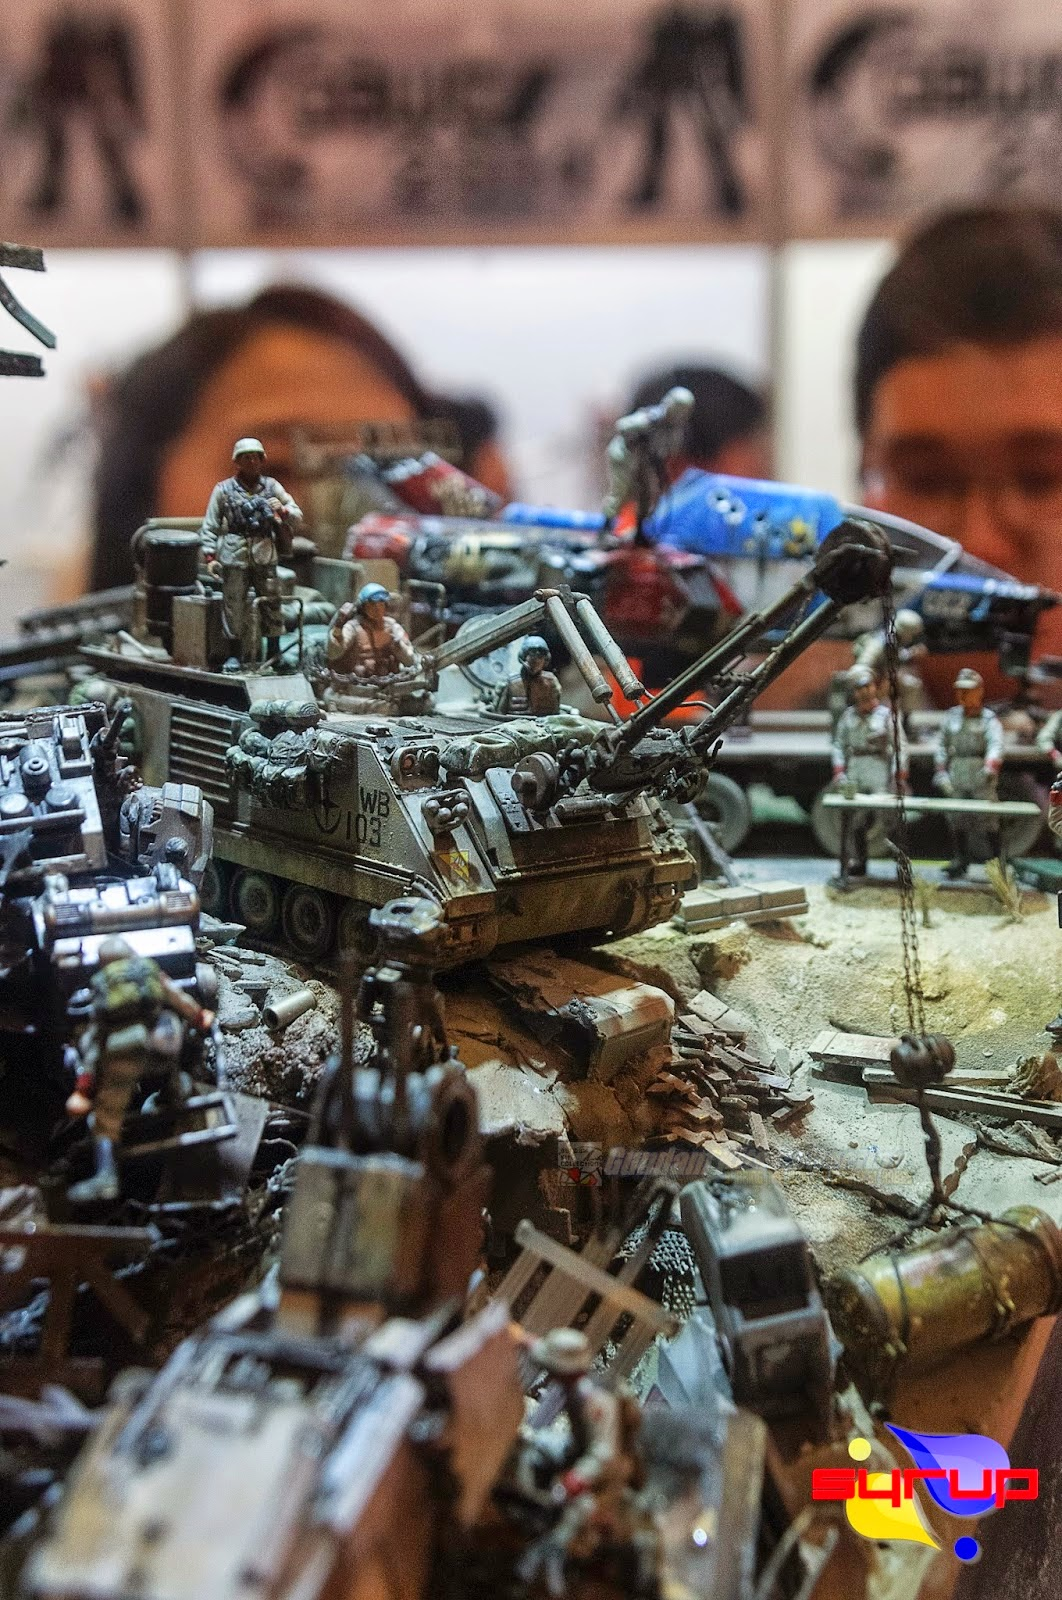 GBWC 2013 Korea Champions on Display at GunPla Expo 2014 Koreaphoto